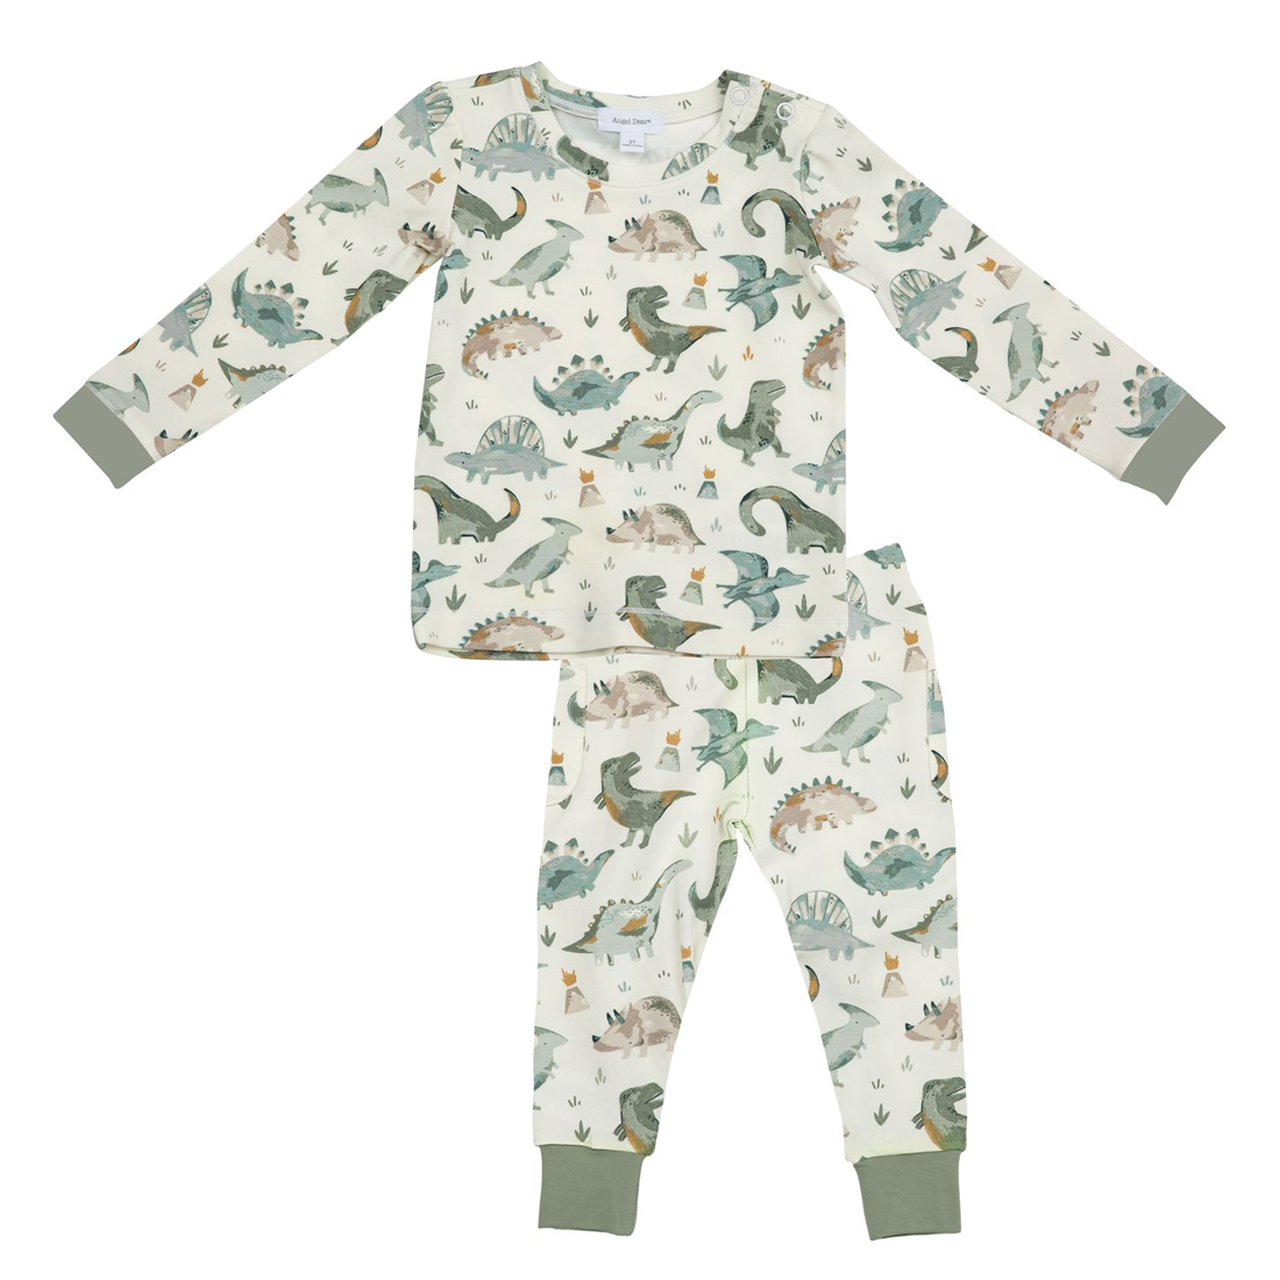 Crayon Dinosaur Lounge Wear Set by Angel Dear